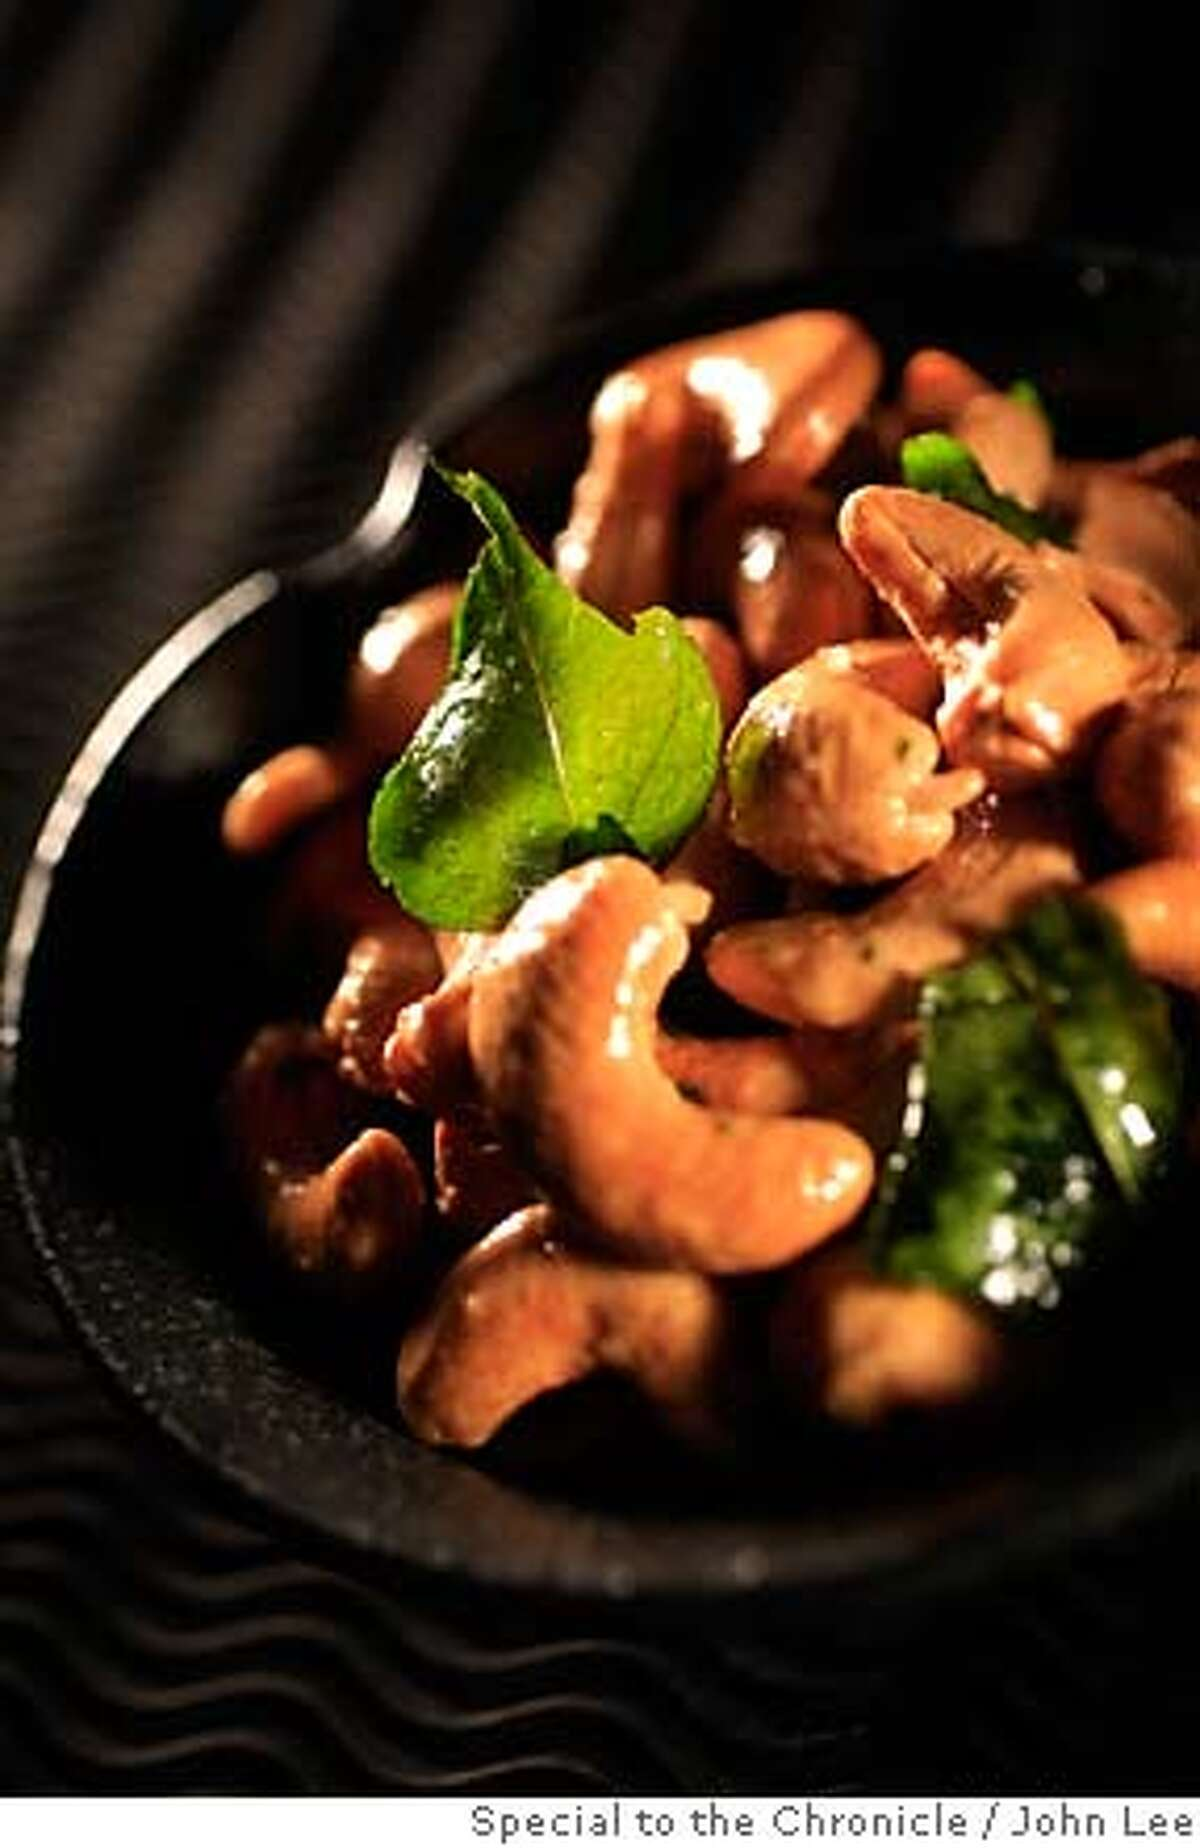 CURRYLEAVES11_05JOHNLEE.JPG Roasted Cashews with Curry Leaves. By JOHN LEE/SPECIAL TO THE CHRONICLE